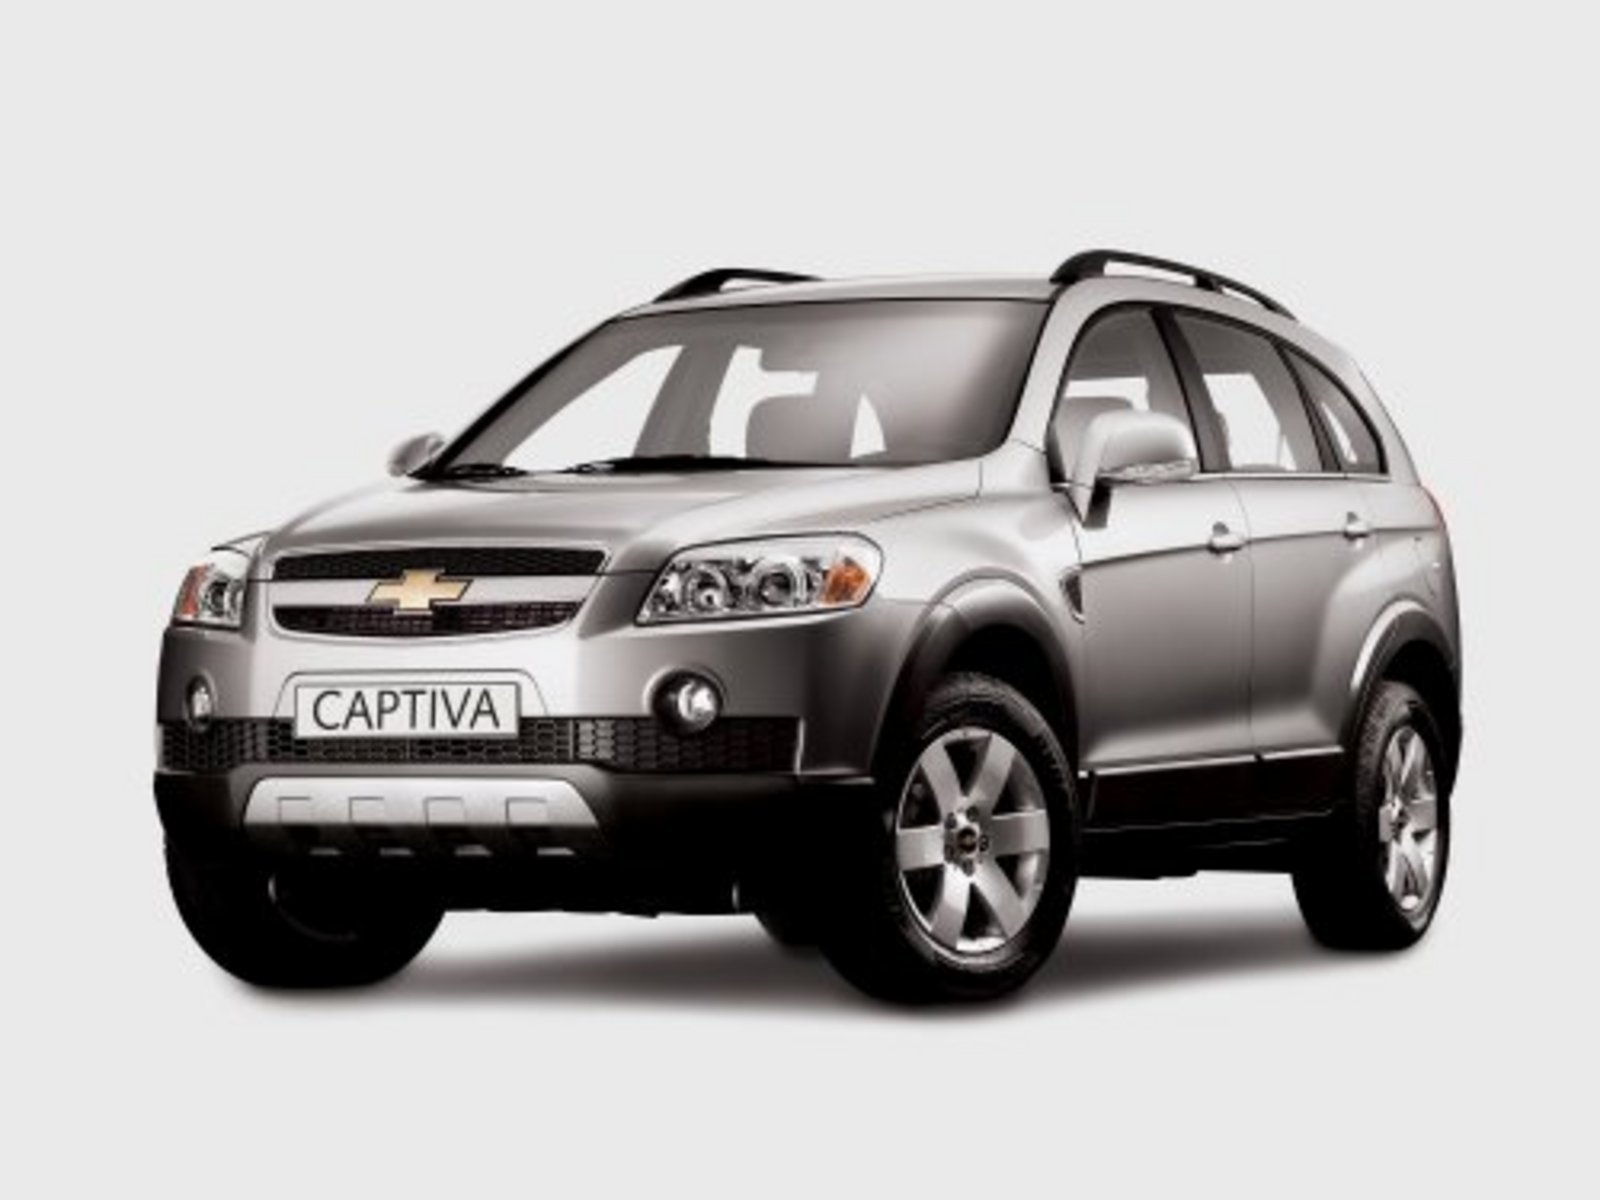 2007 chevrolet captiva review top speed. Black Bedroom Furniture Sets. Home Design Ideas